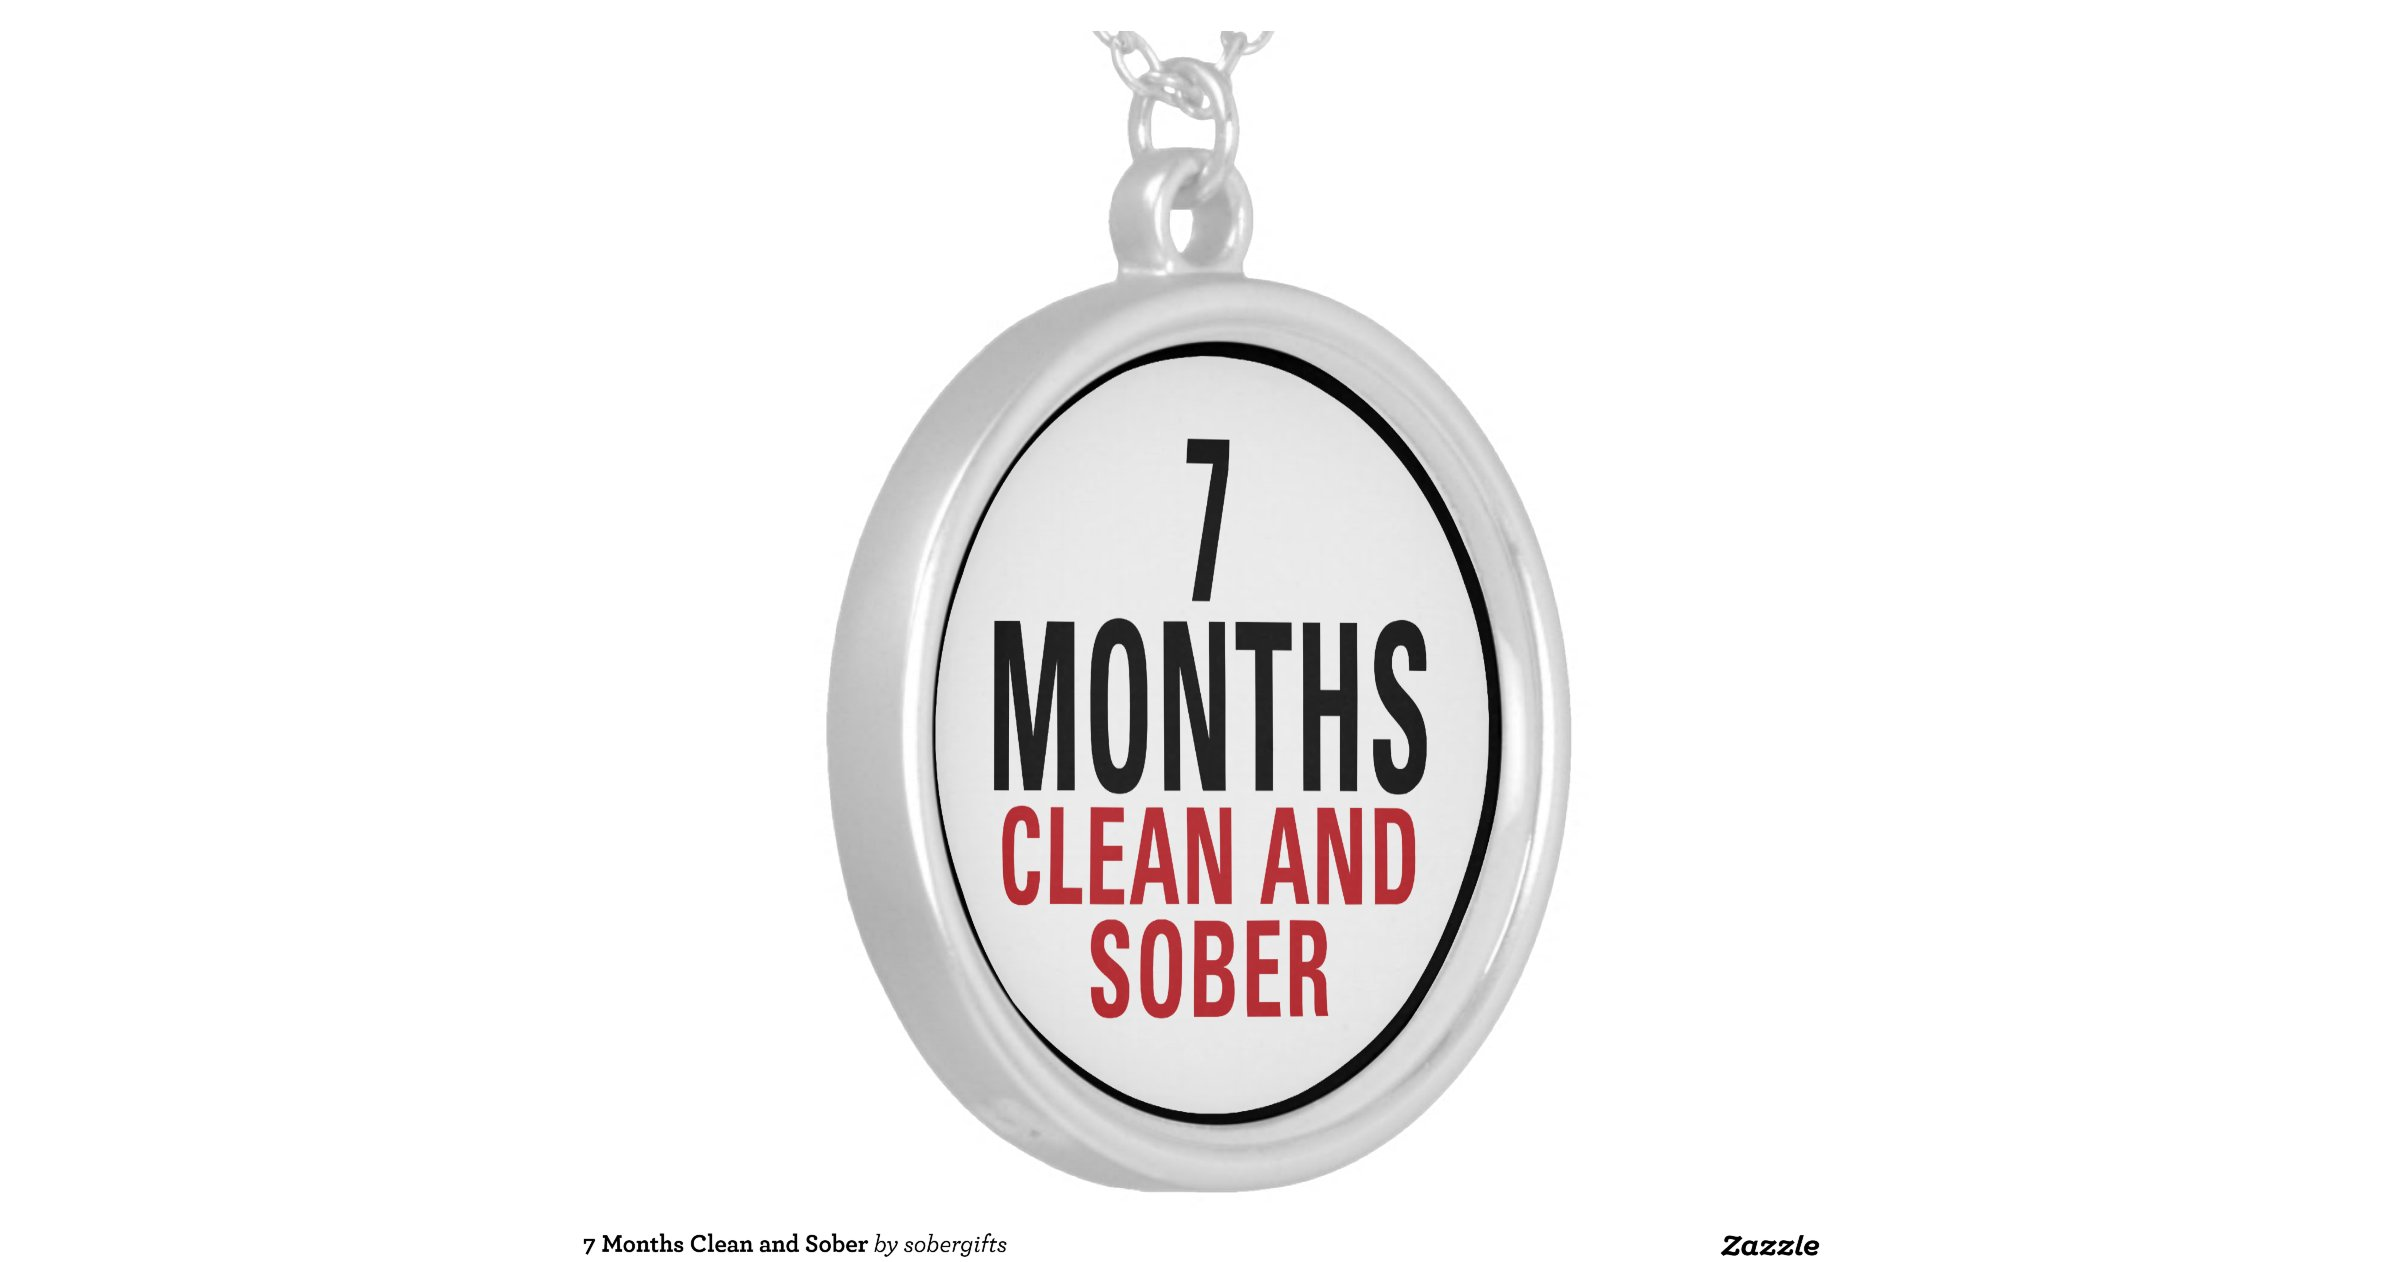 3 months clean and sober dating